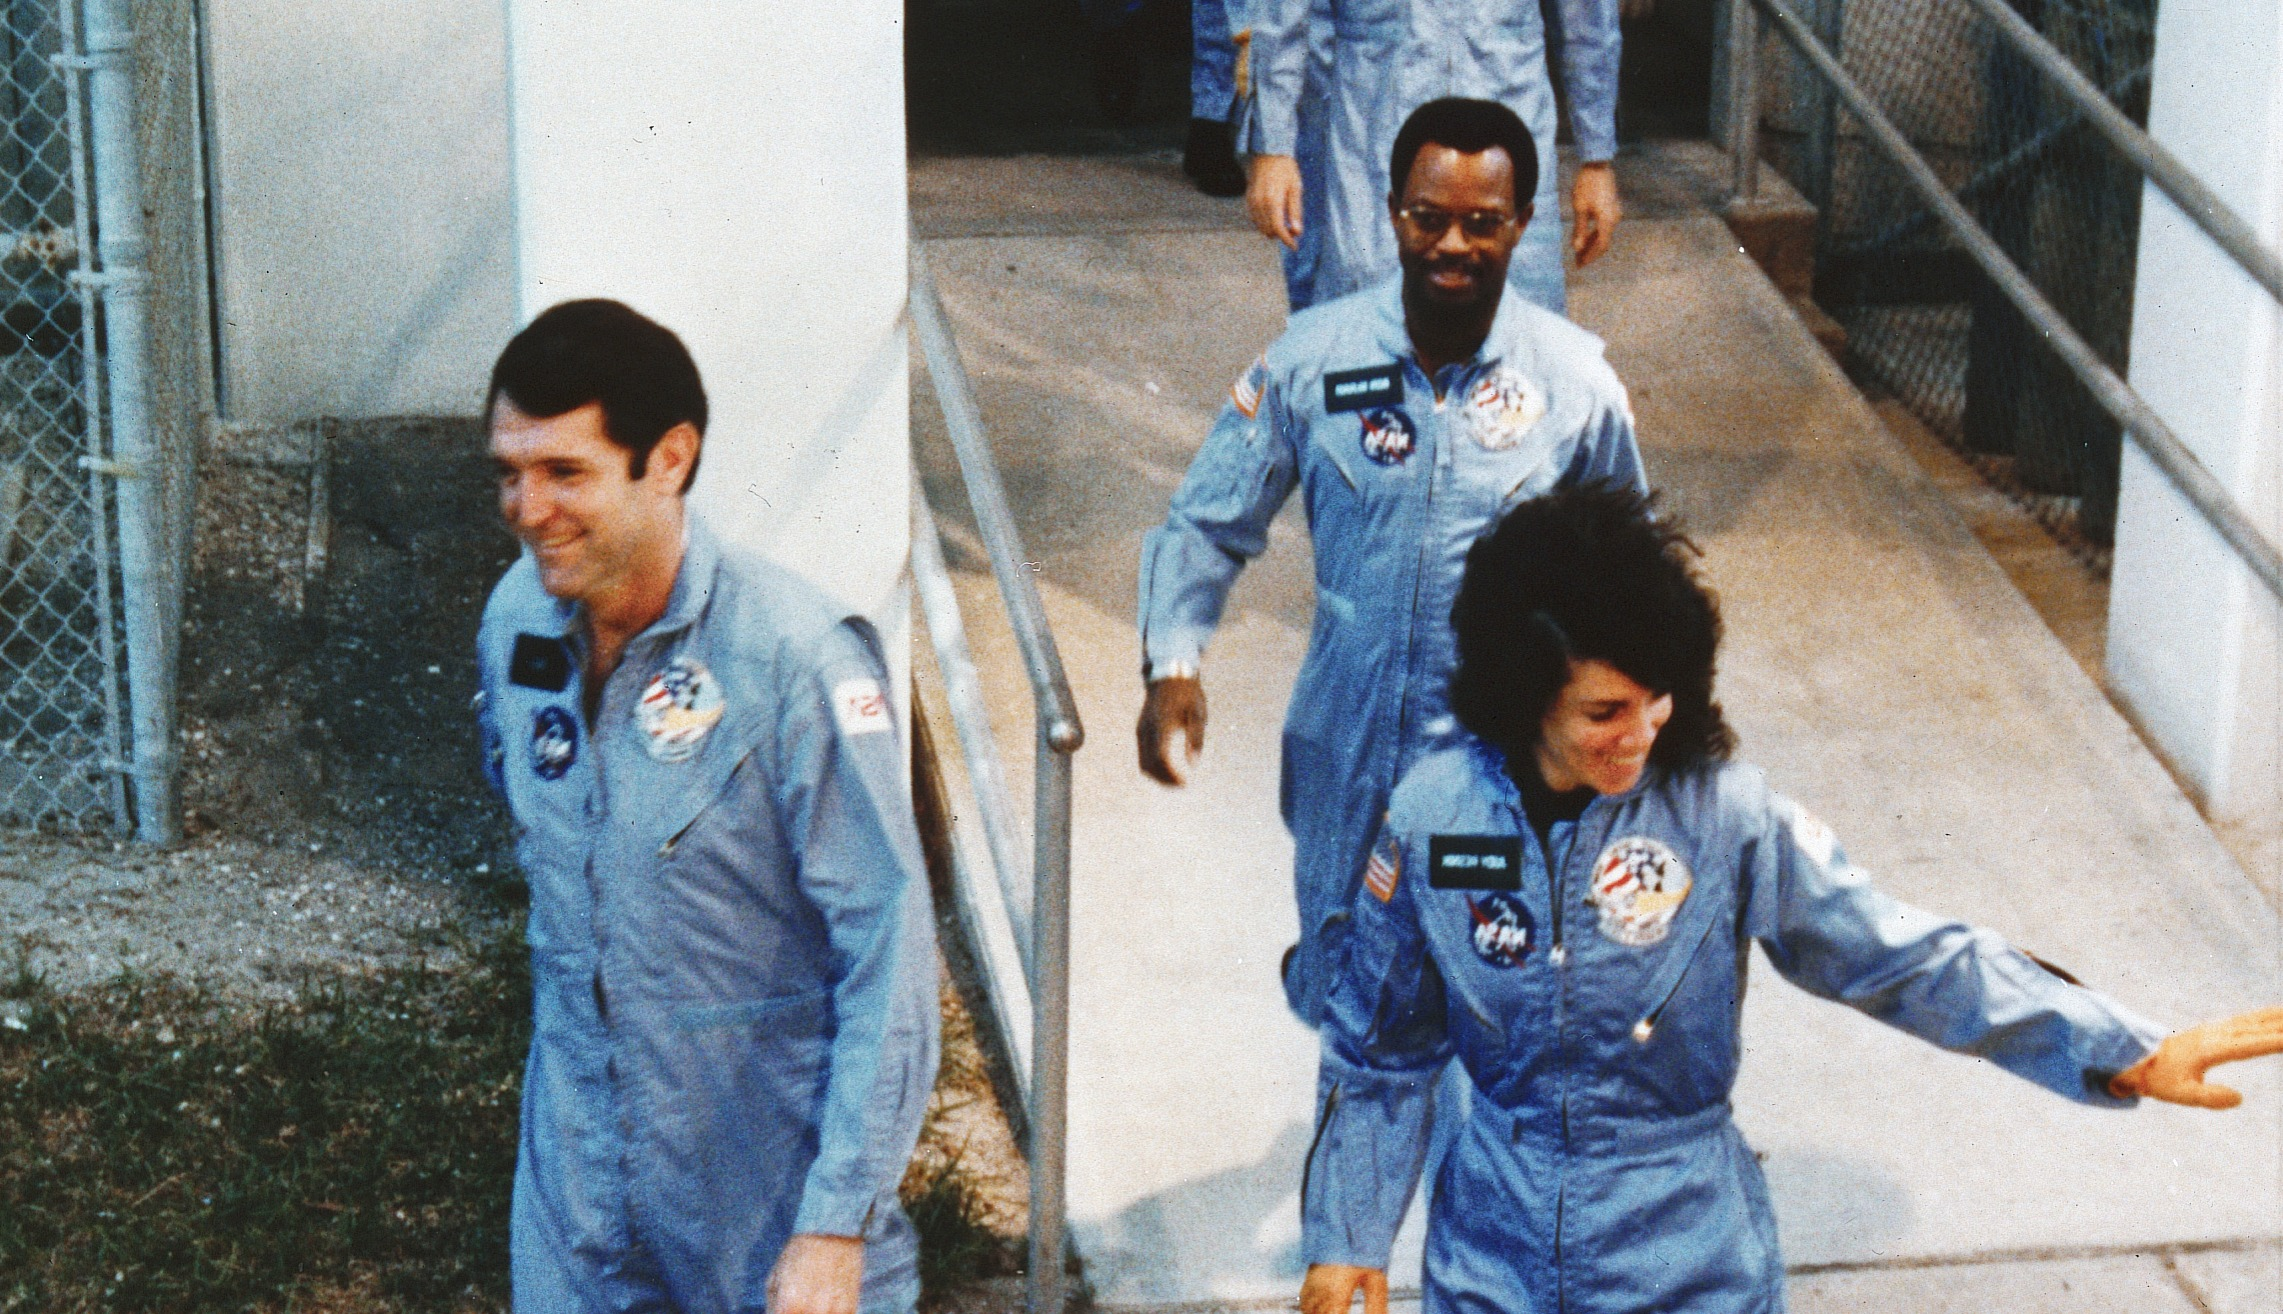 challenger crew was alive during crash